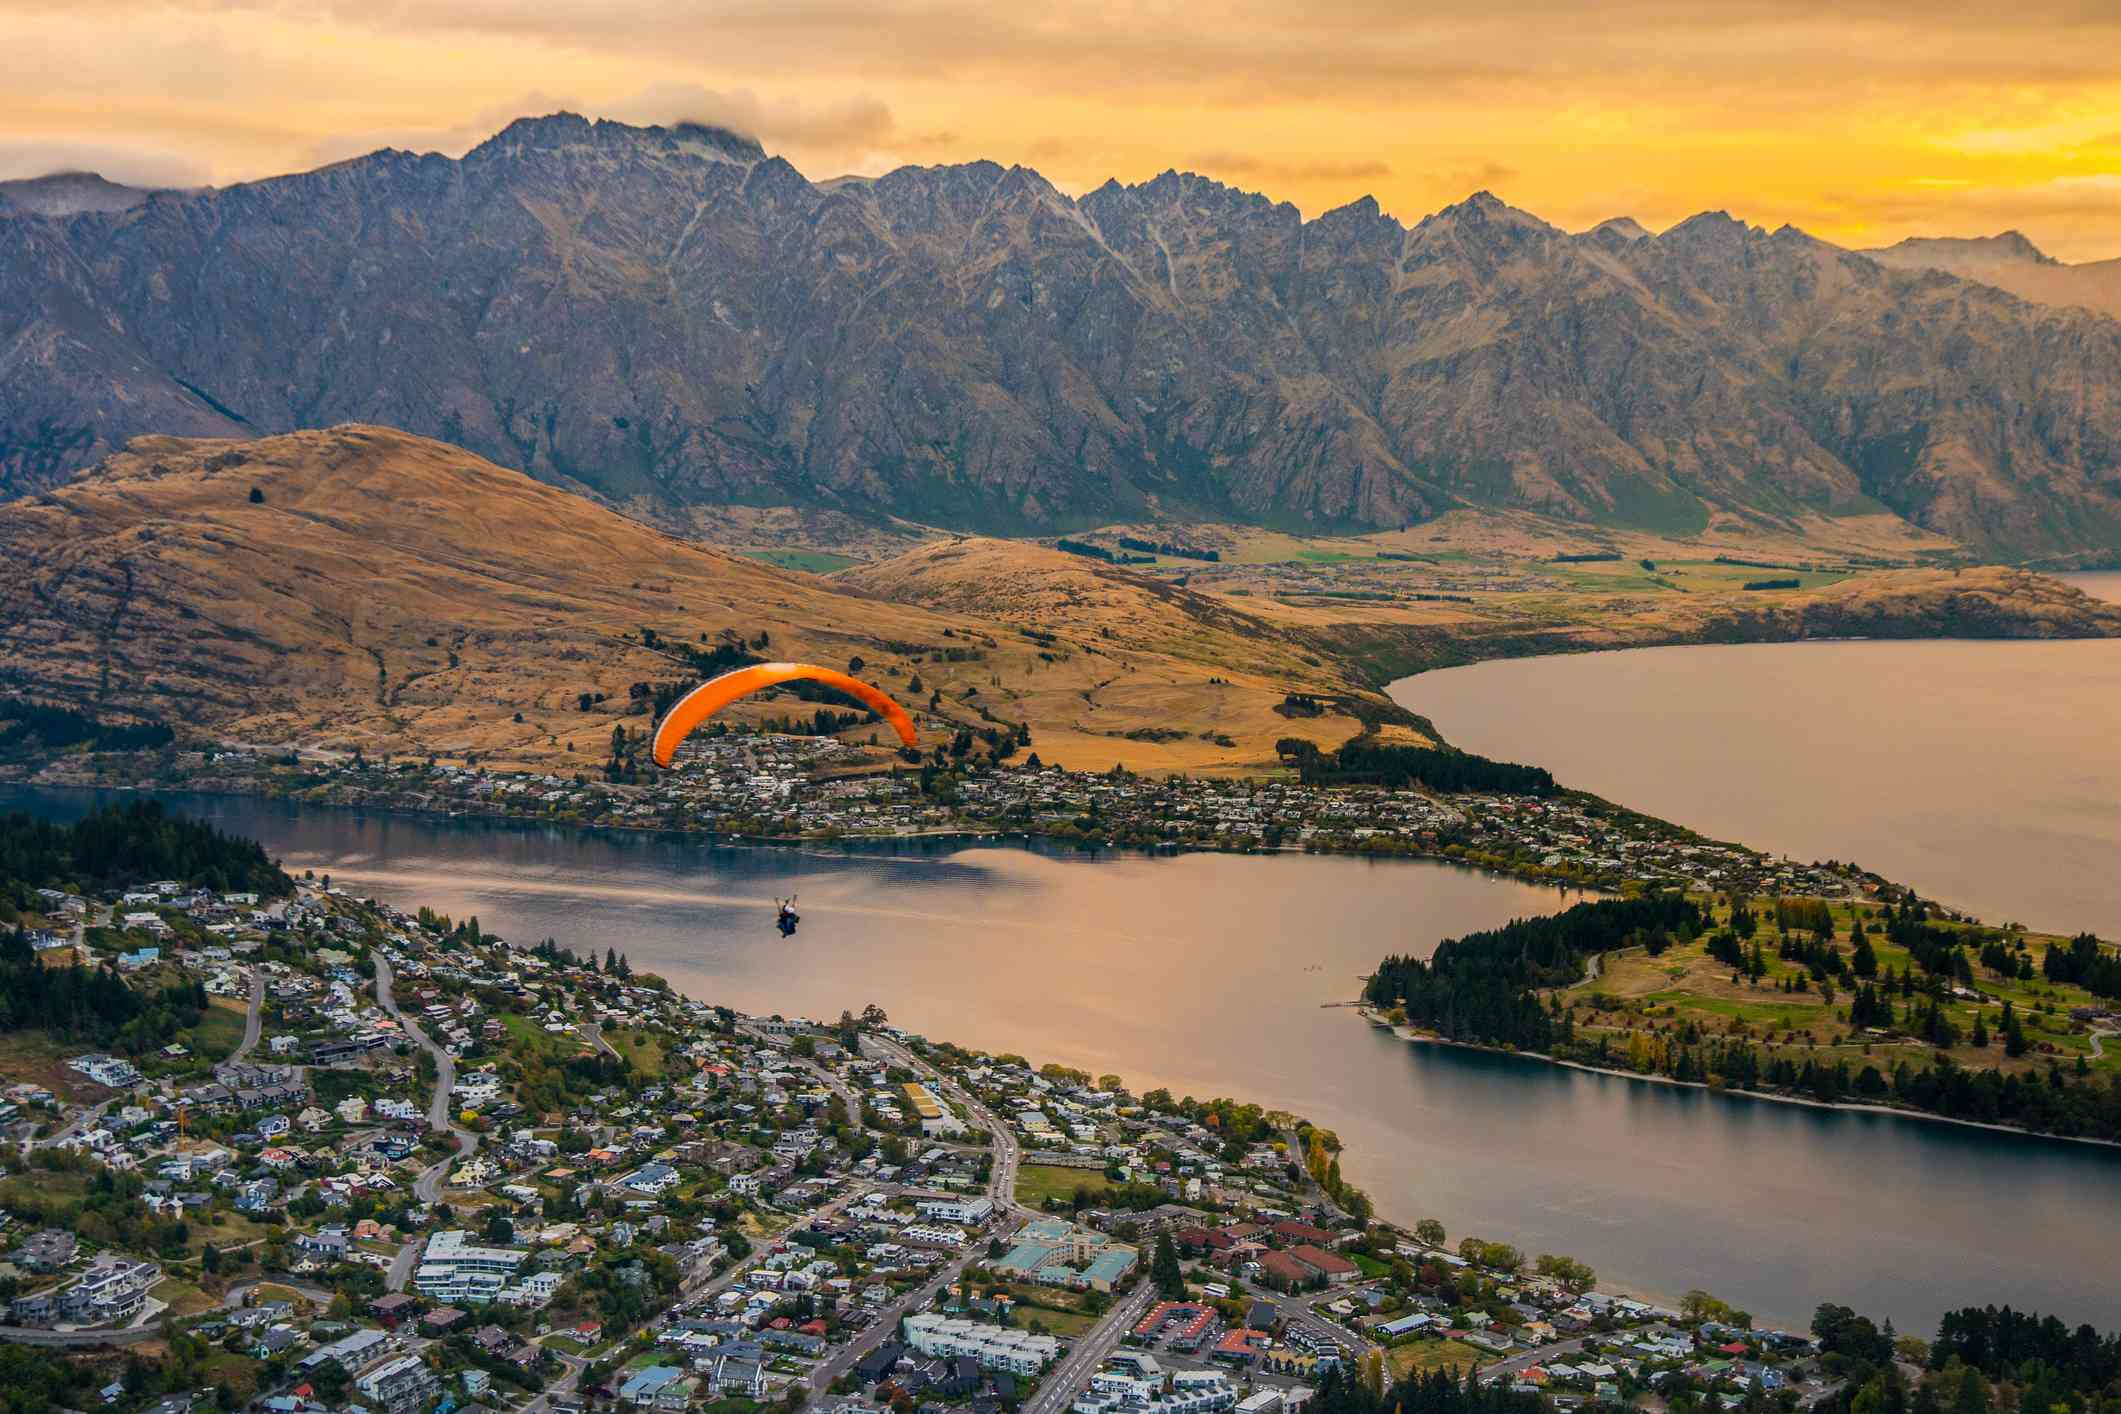 Paragliding over Queenstown and Lake Wakaitipu from viewpoint at Queenstown Skyline, New Zealand